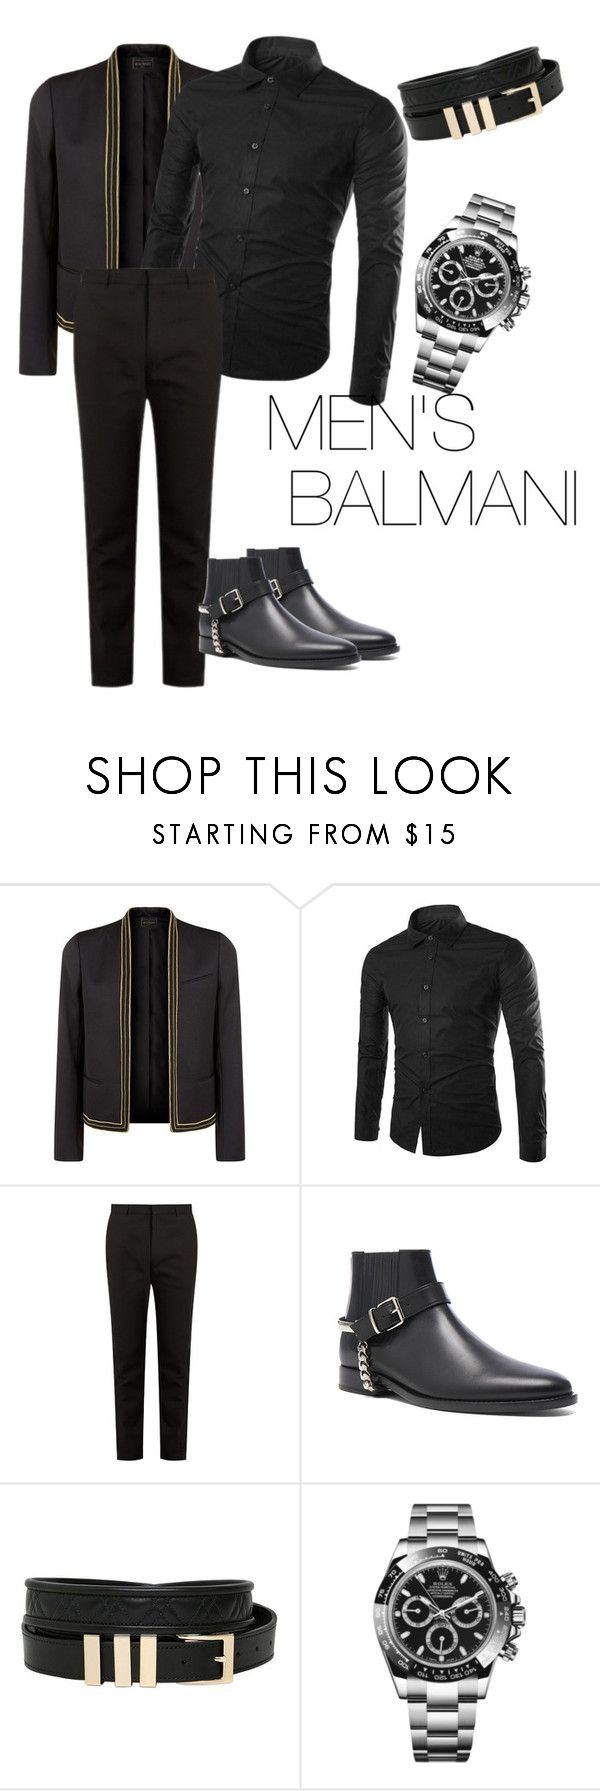 """""""outfit#100"""" by alifia-fae on Polyvore featuring Balmain, Rolex, men's fashion and menswear"""